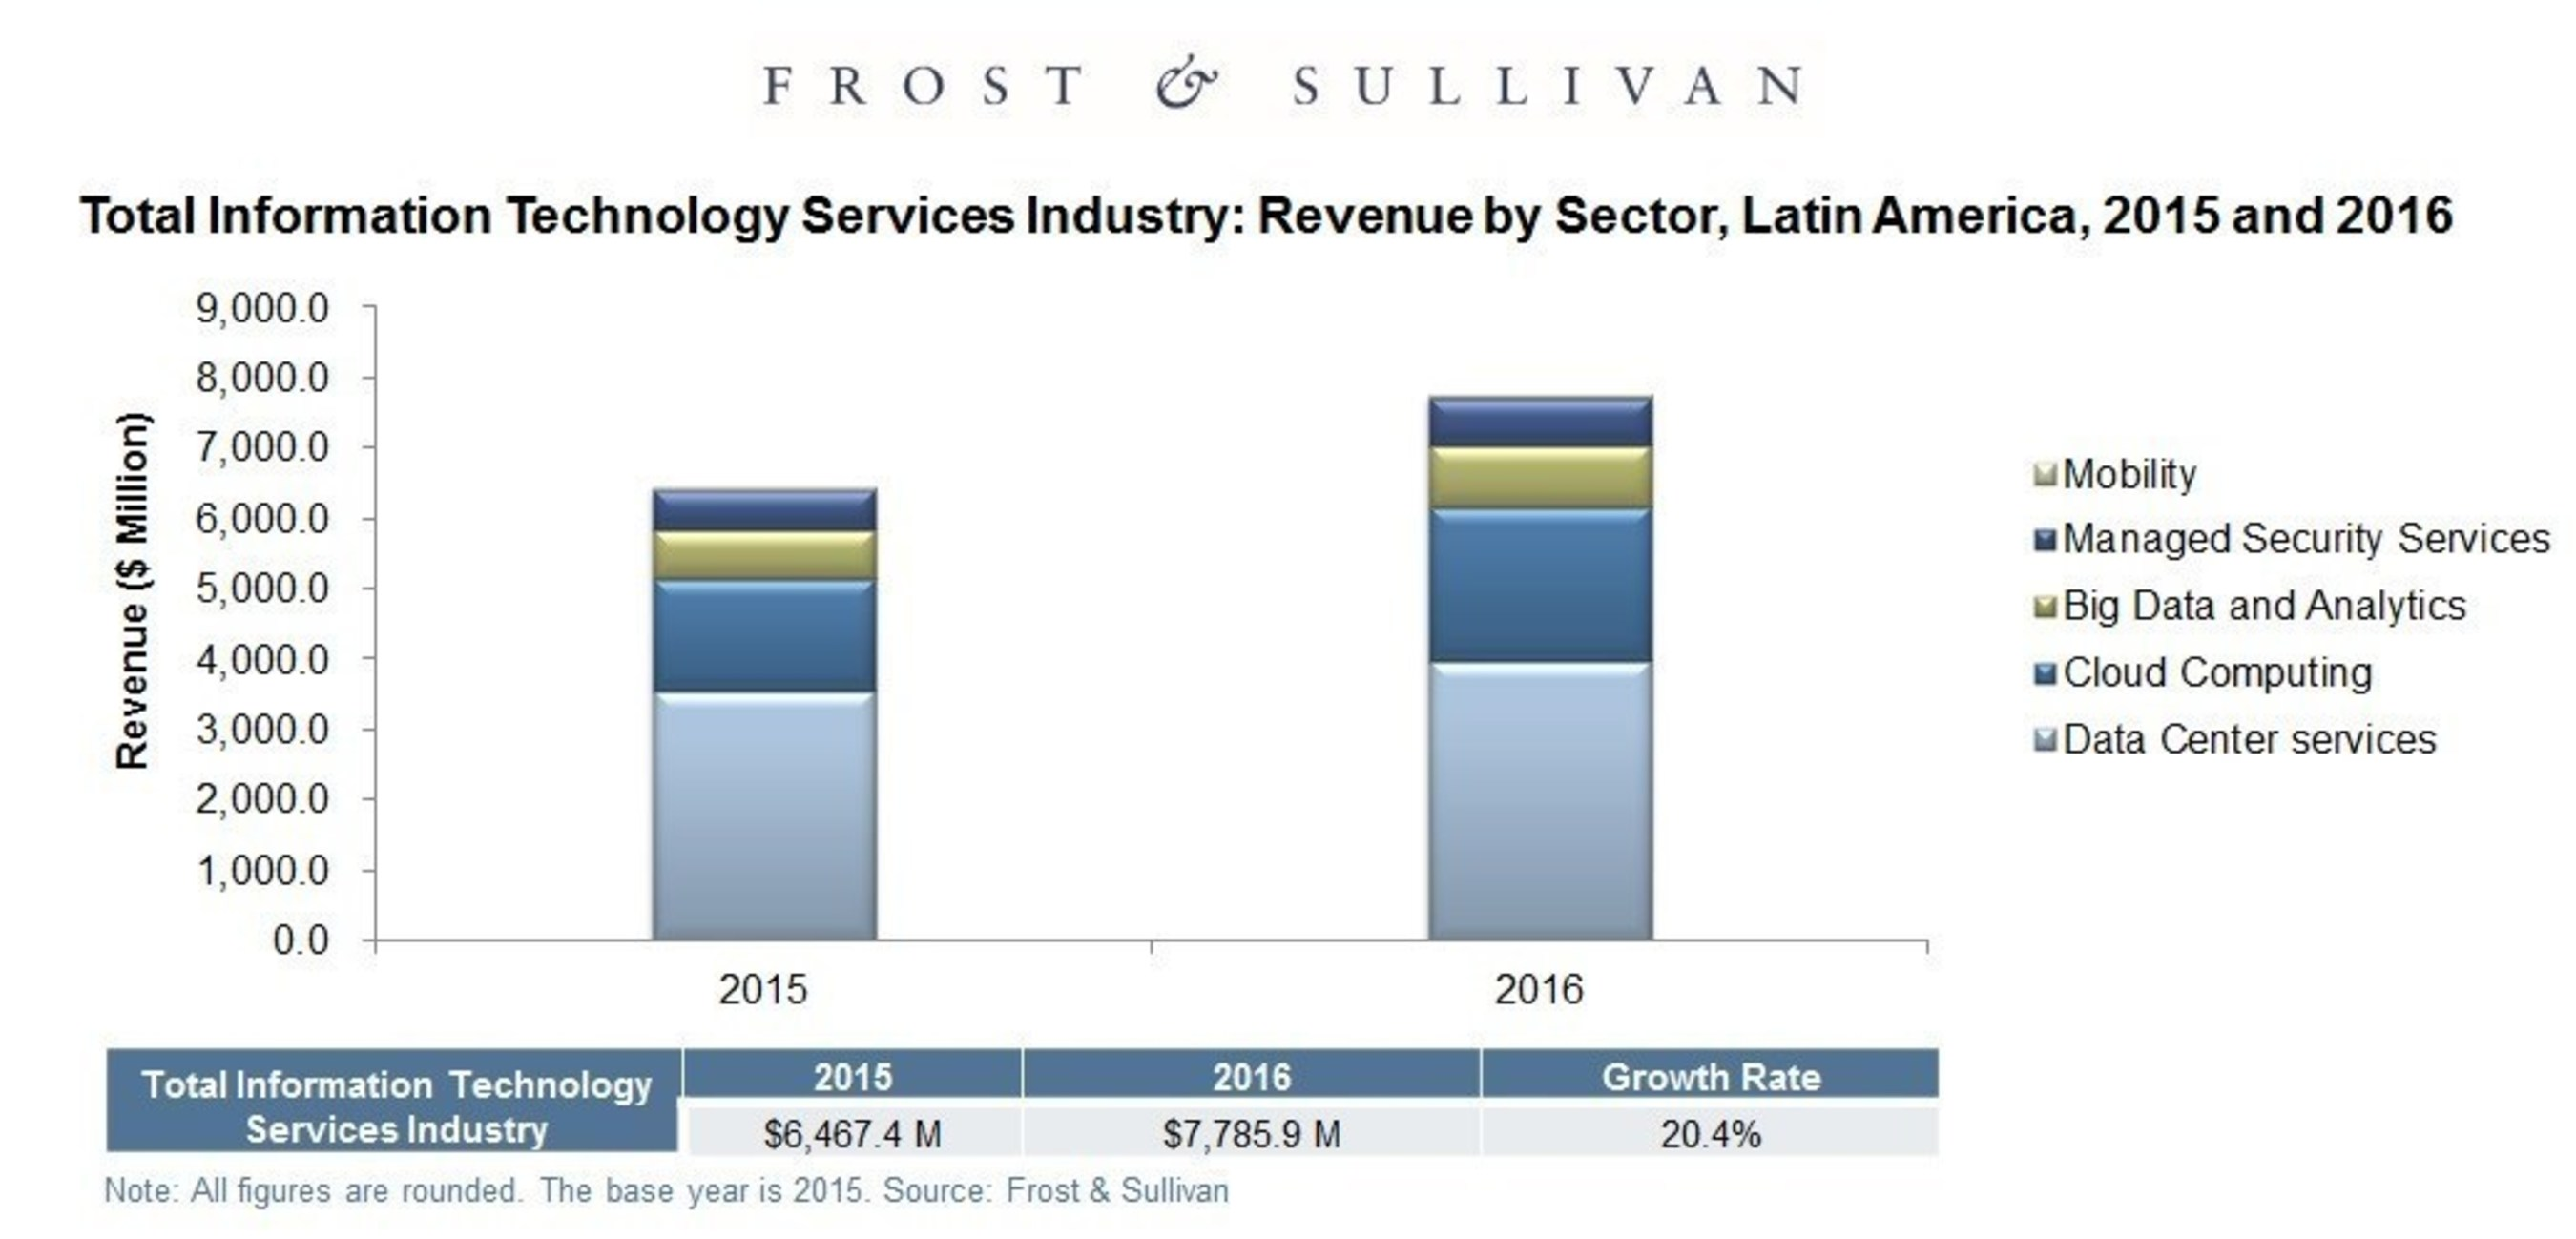 Total Information Technology Services Industry, Revenue by Sector, Latin America 2015 & 2016. Source: Frost & Sullivan